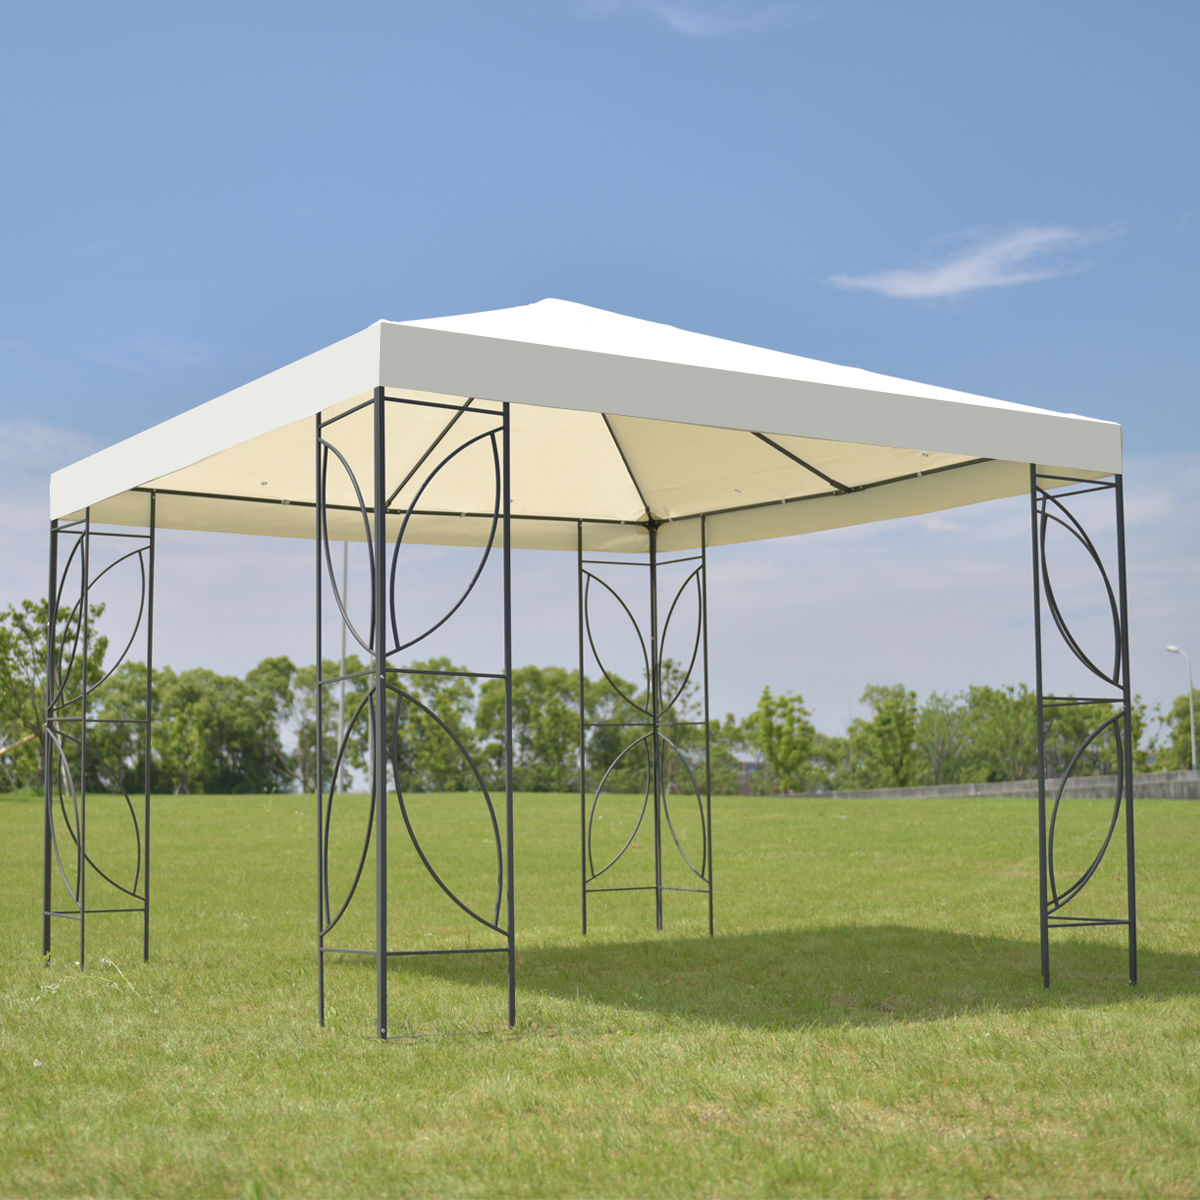 Costway Patio 10'x10' Square Gazebo Canopy Tent Steel Frame Shelter Awning W Beige Cover by Costway